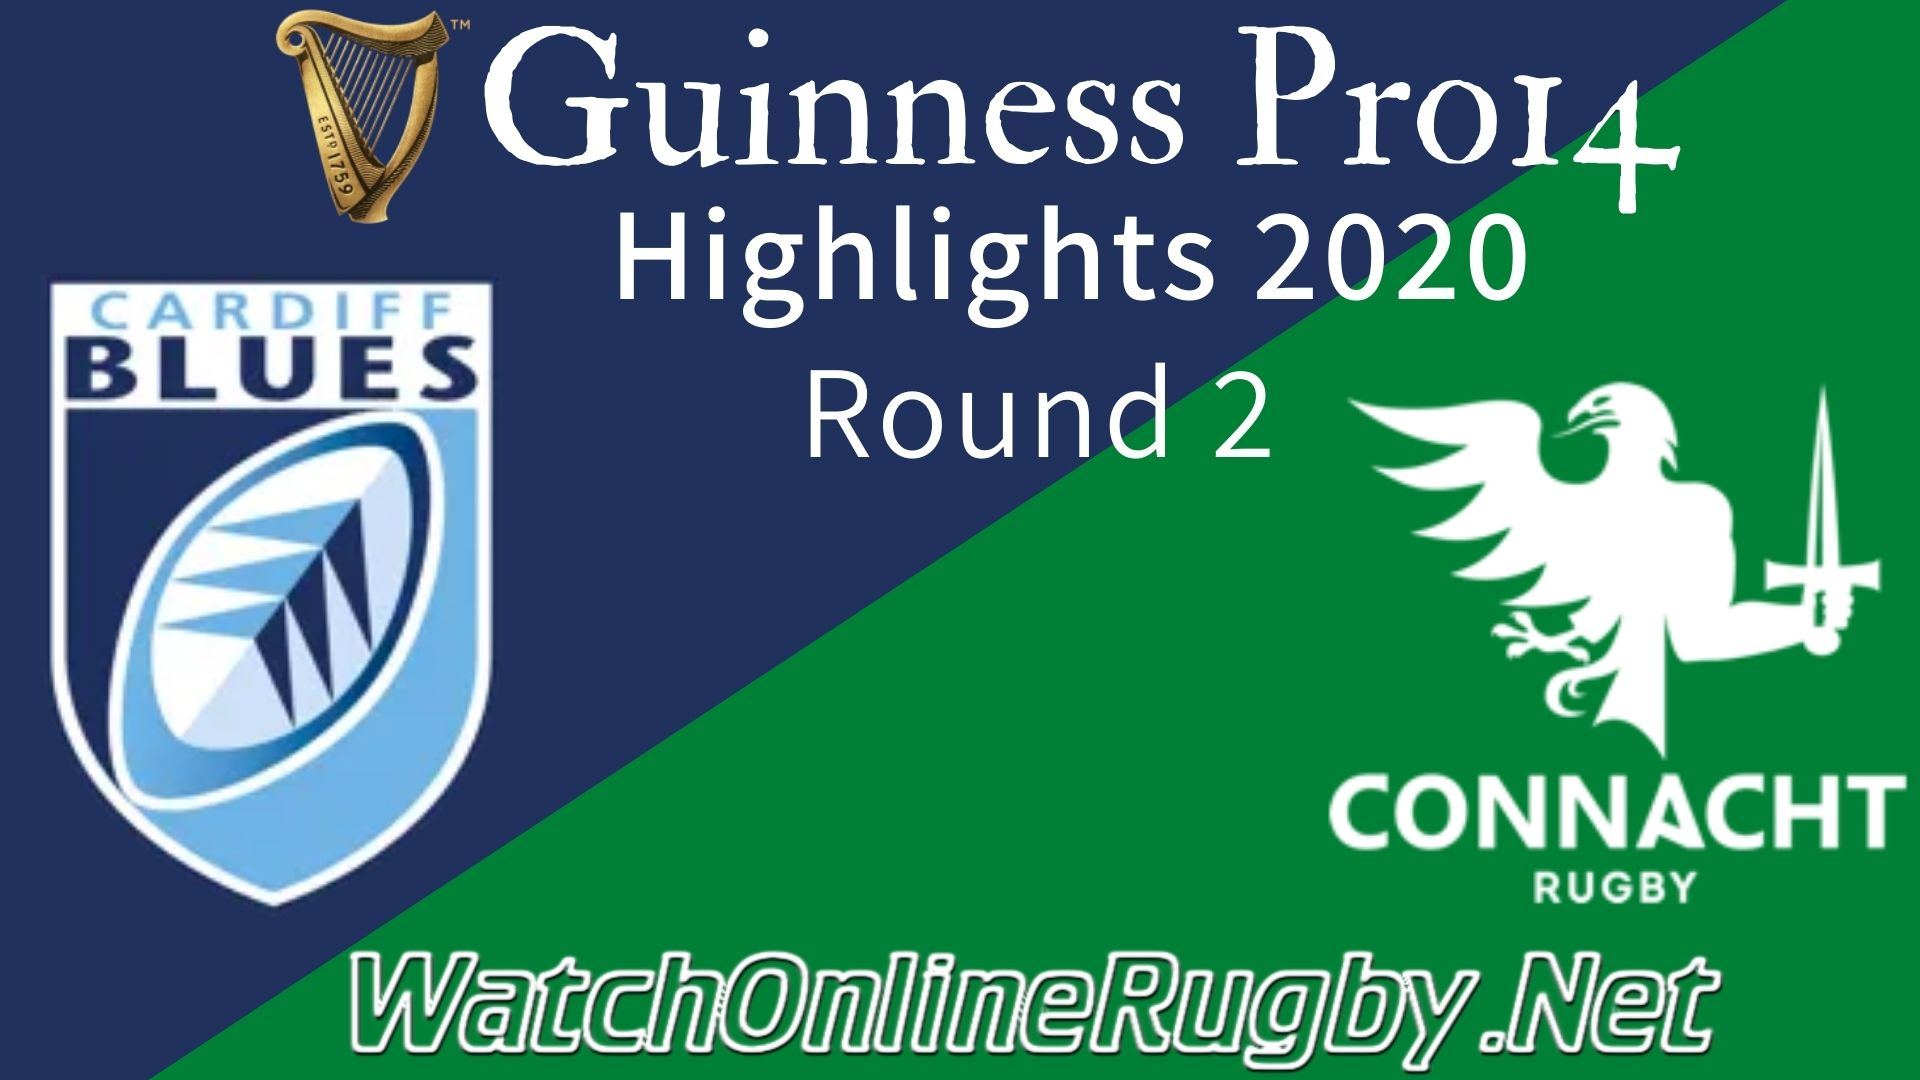 Cardiff Blues vs Connacht RD 2 Highlights 2020